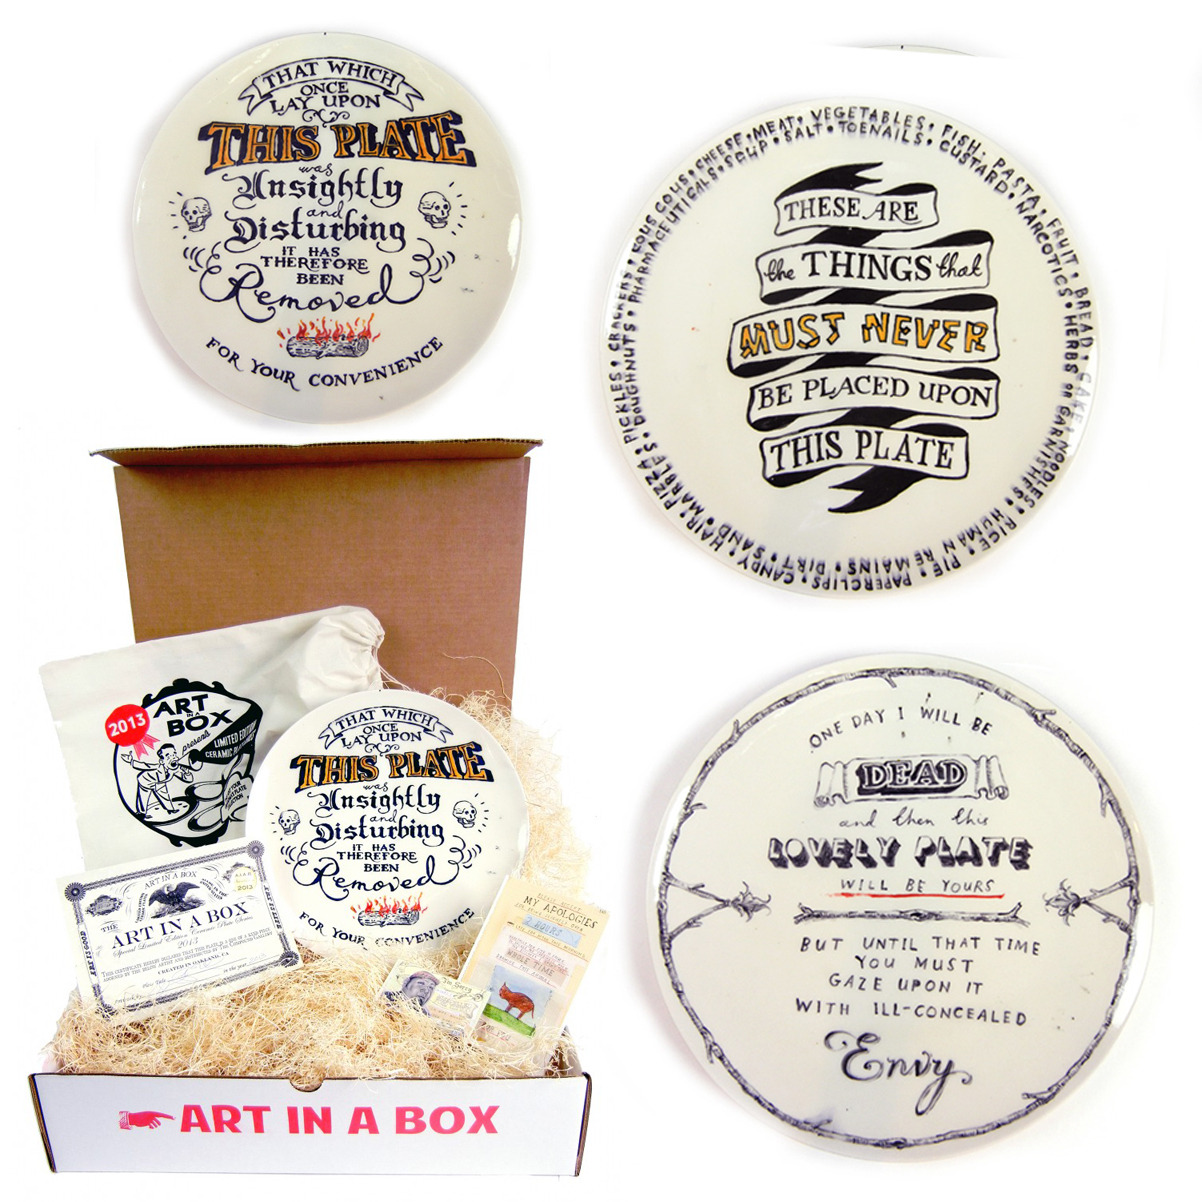 "Finally, The Oakland's amazing Compound Gallery brings you dishwasher and microwave safe art, in the shape of the one and only Limited Edition Ceramic Plate Series by  Art in a Box .    There are only 12 Editions (4 plates per edition) available at only $300 each (including shipping).  Subscribers  will receive  4 original plates  delivered to their door (one plate each month). Each 11"" plate arrives inside a hand printed muslin bag along with a certificate signed by the artist.   The above constitutes my own humble contribution,  check out the rest here."